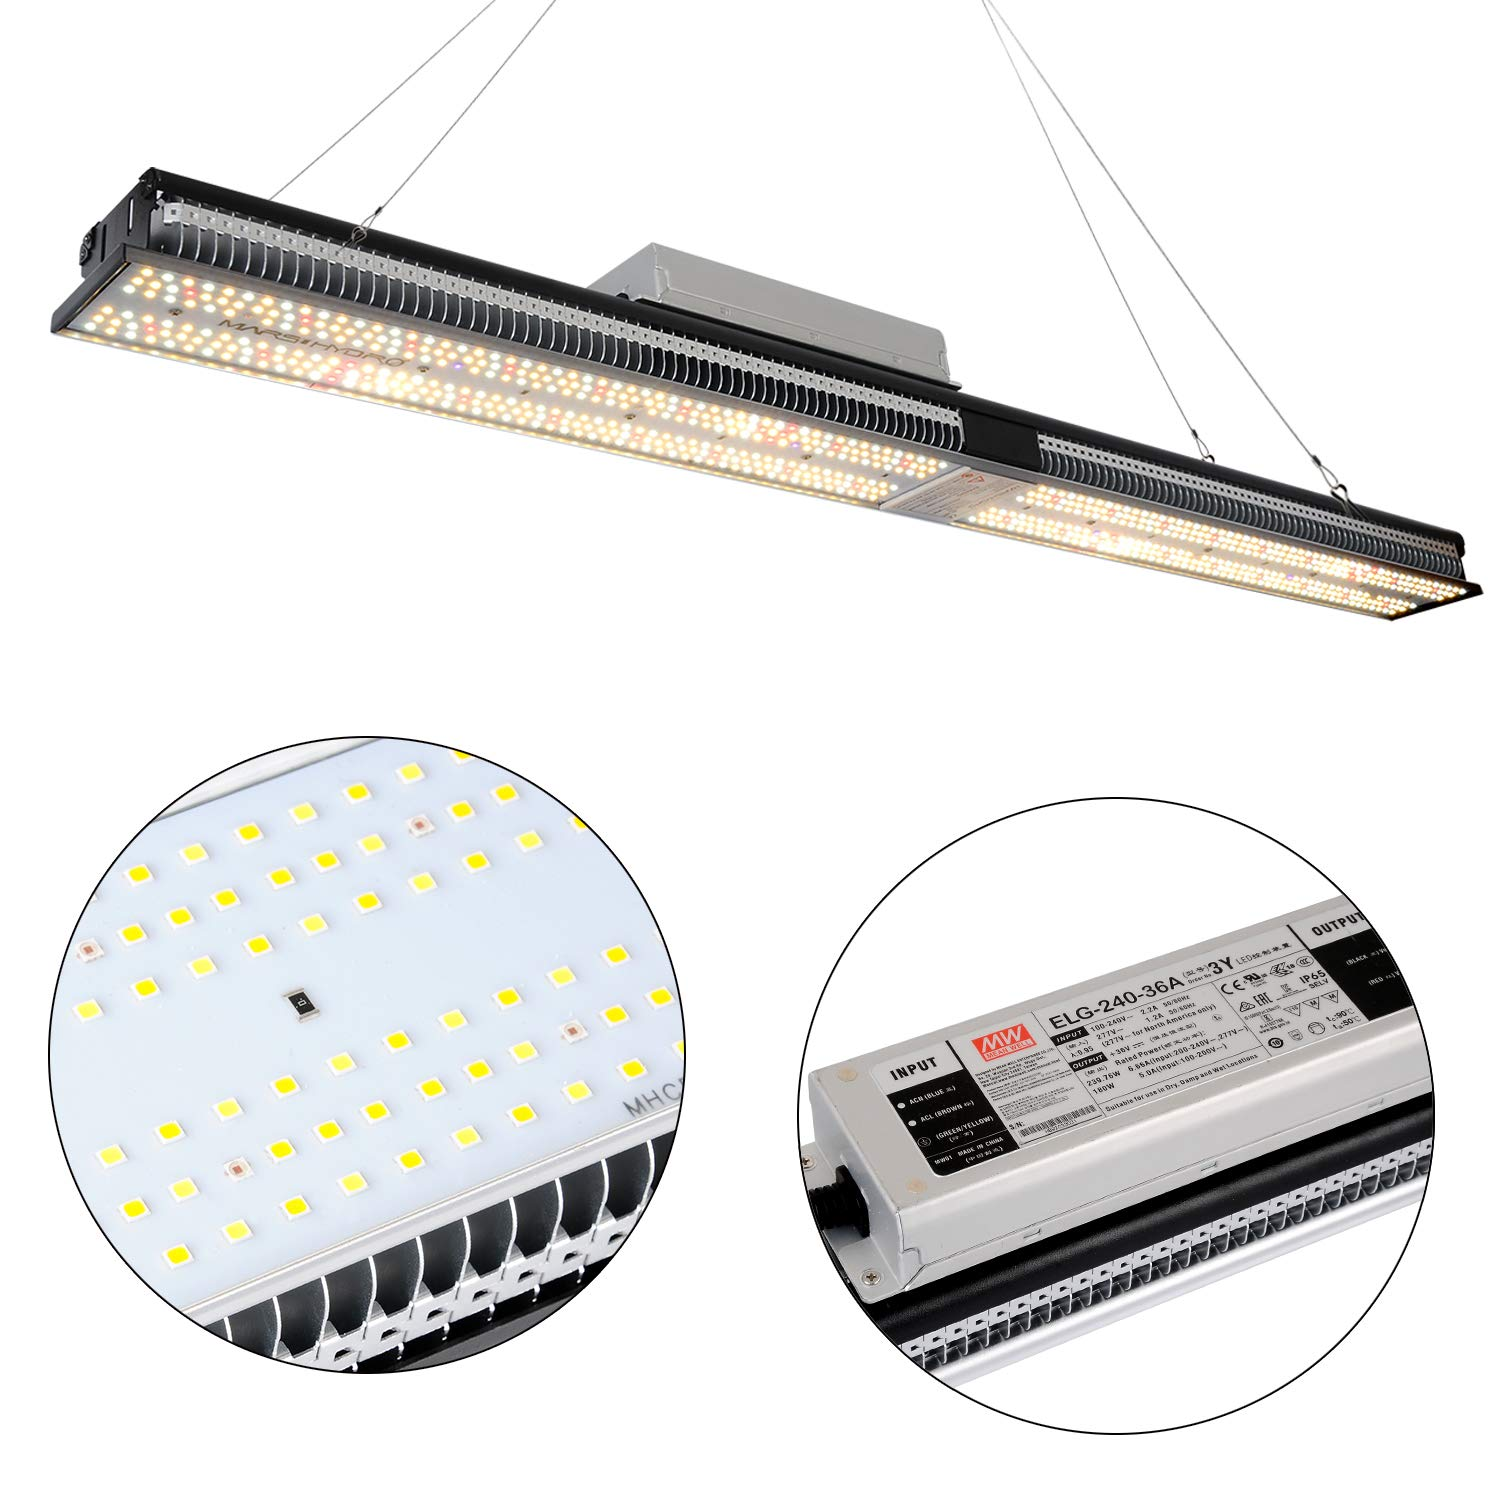 MARS HYDRO SP 250 Led Grow Lights Full Spectrum for Indoor Plants Veg and Flower Dimmable Hydroponic Greenhouse Water Proof Growing Lamps Cool and Quiet